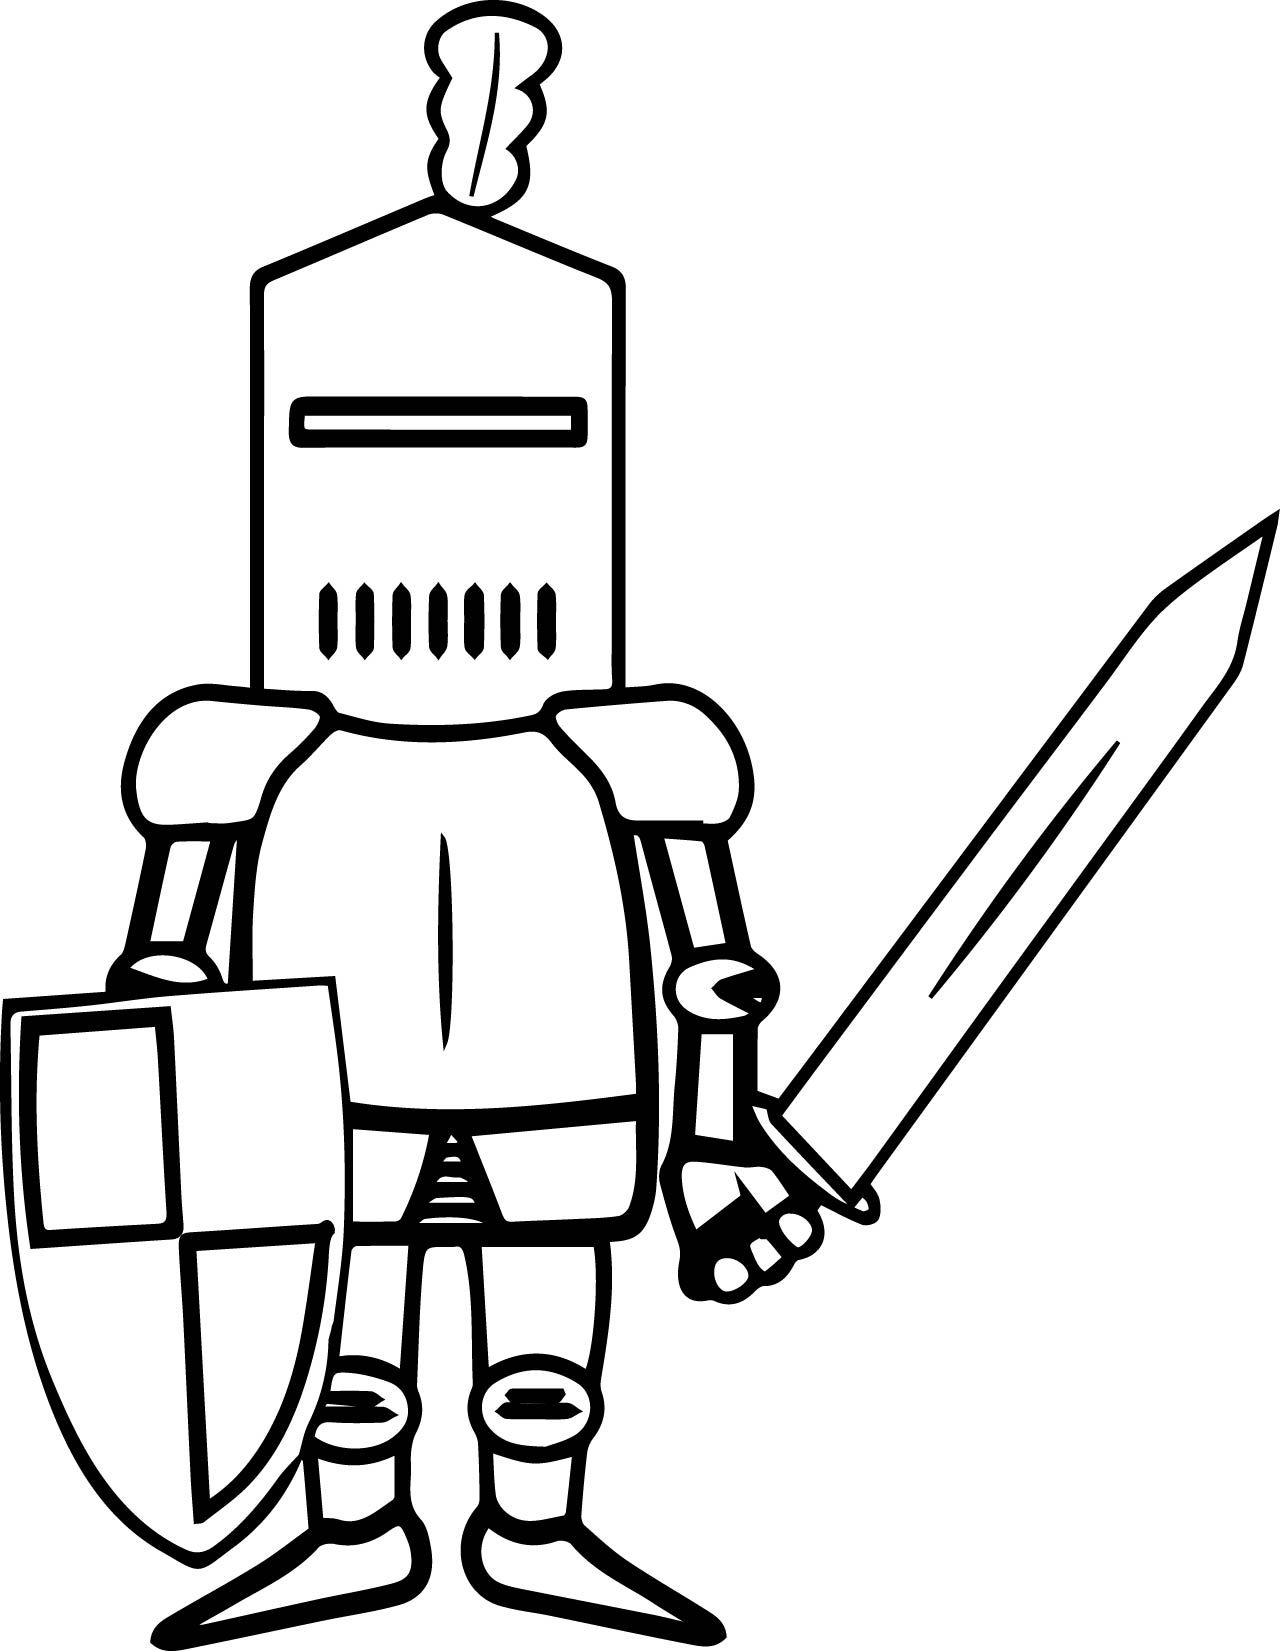 Knight Sword Coloring Page | Knight Sword, Coloring Pages